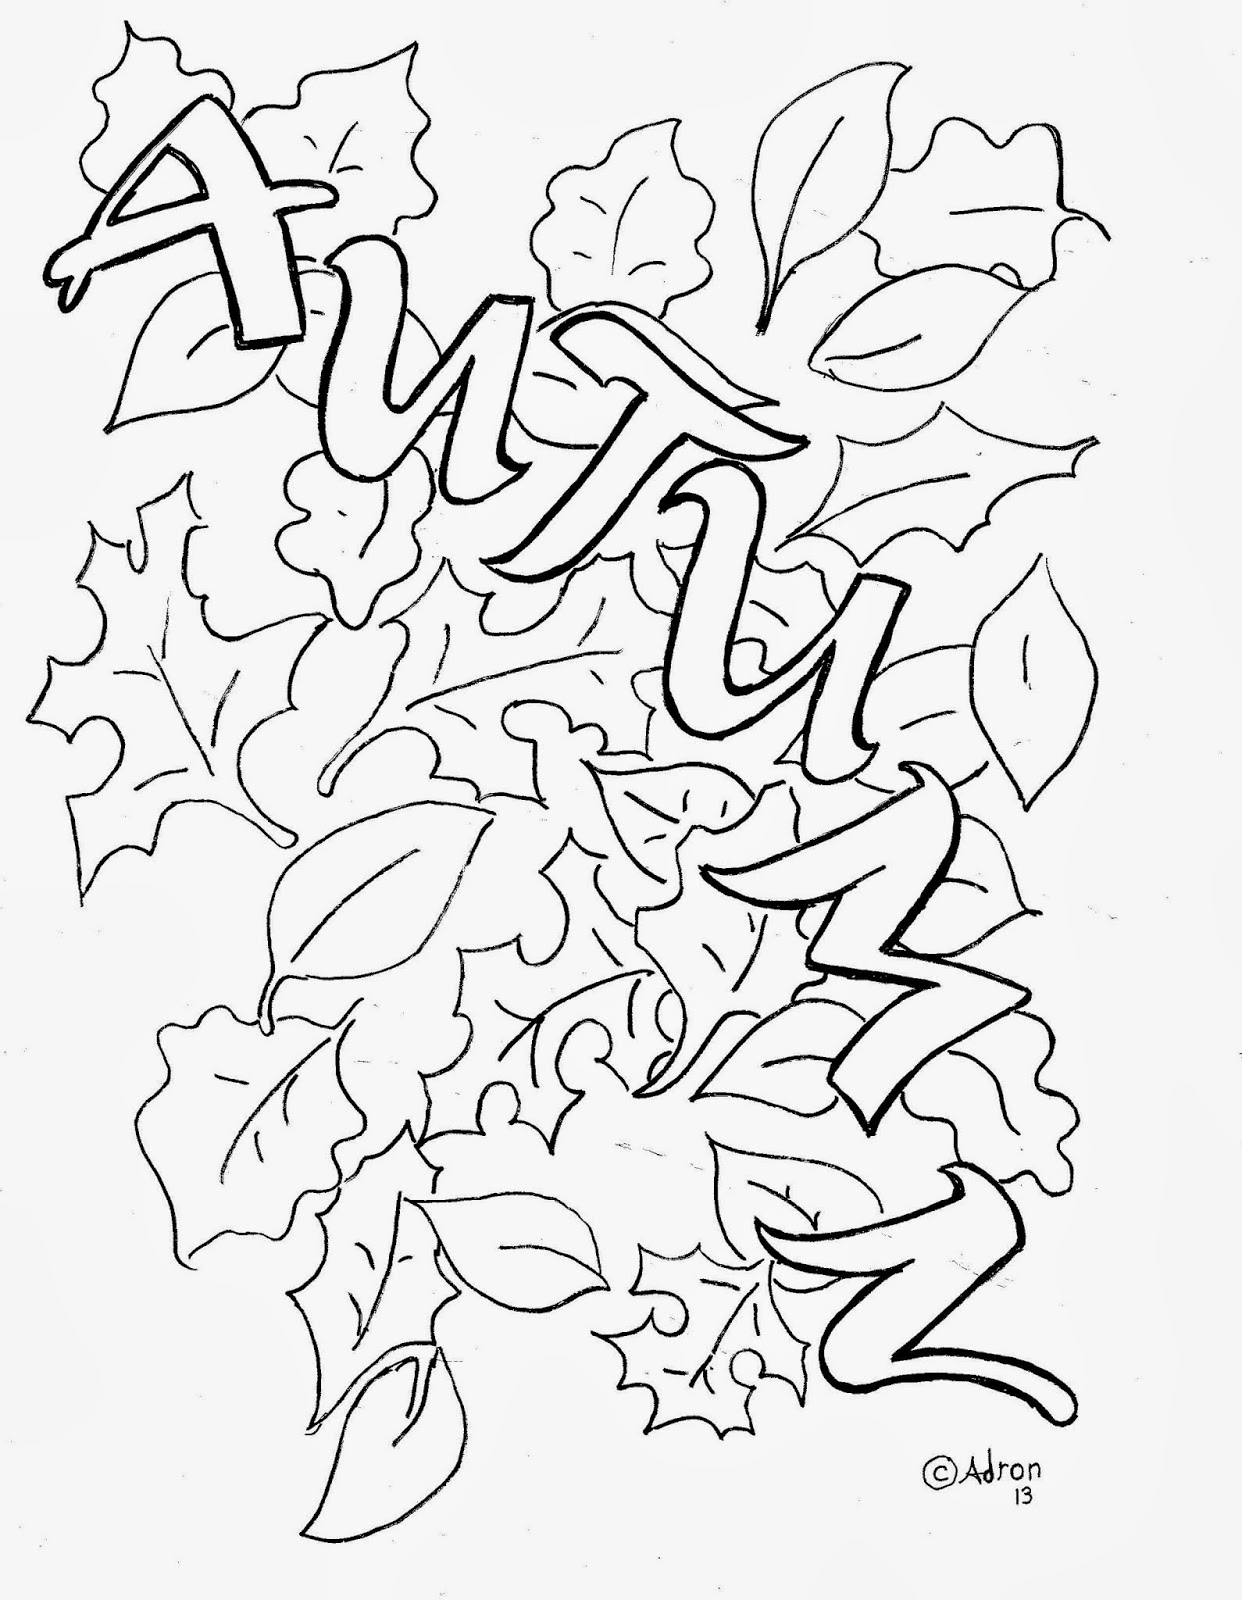 Coloring Pages for Kids by Mr. Adron: Autumn Leaves